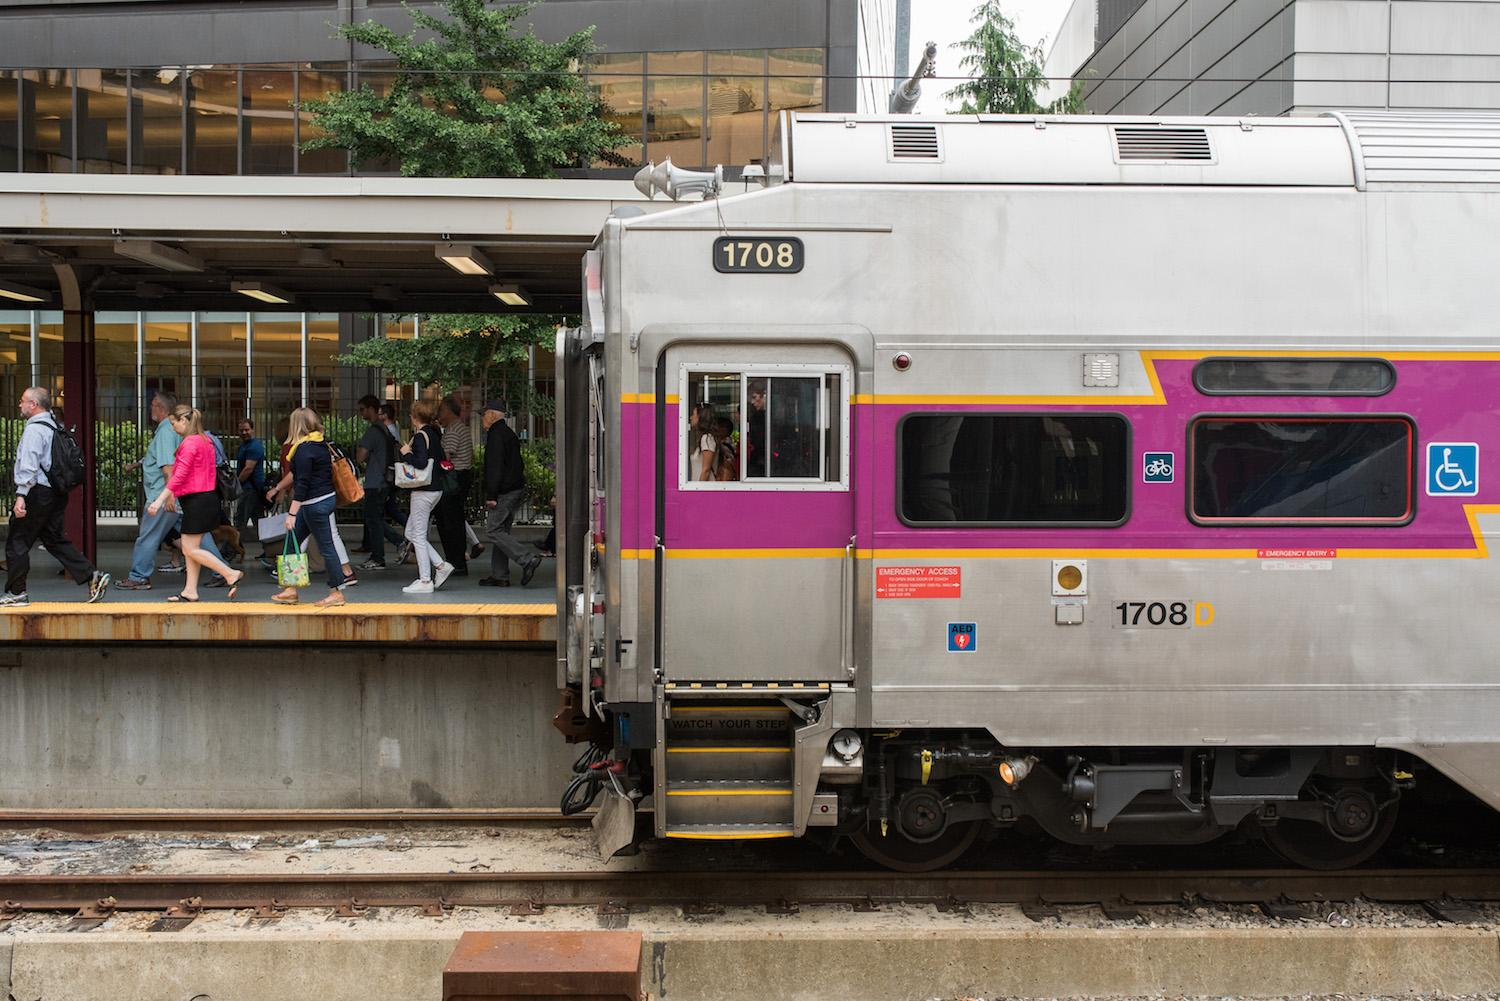 Commuter Rail train at South Station, with passengers disembarking